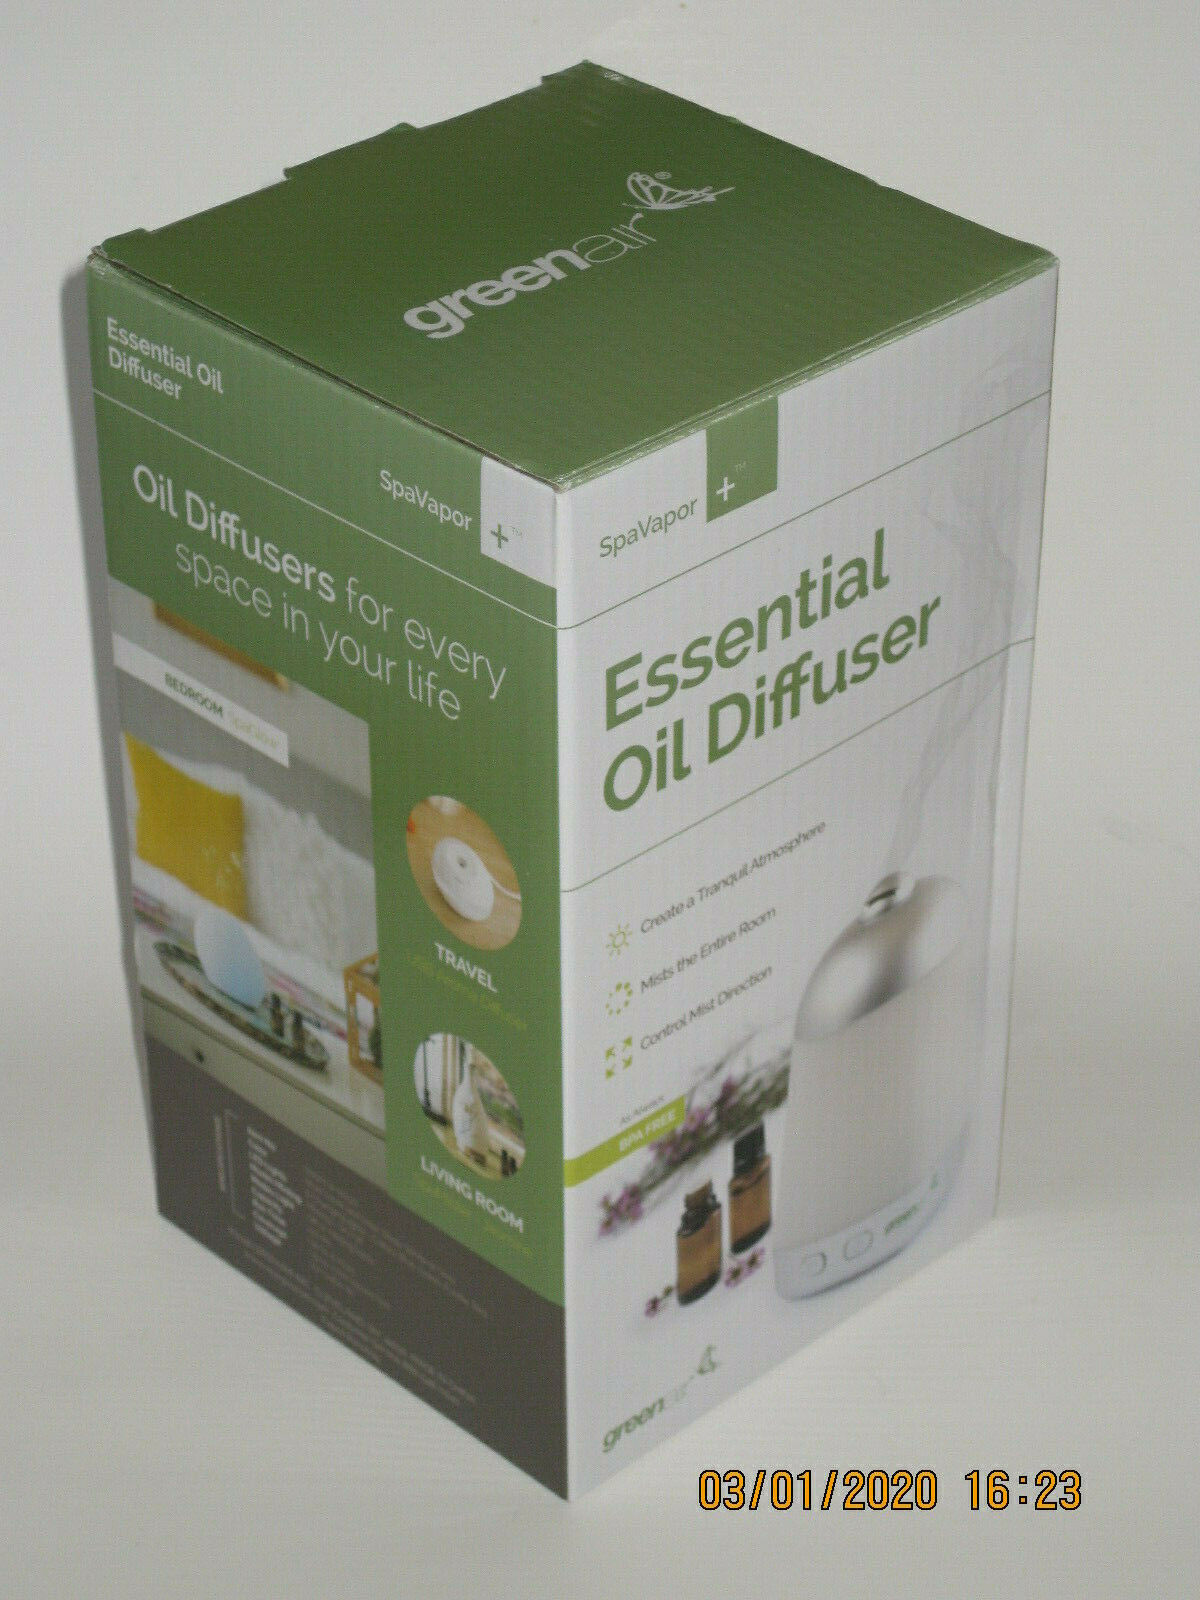 Spa Vapor + Green Air New in Box Aromatherapy Diffuser Plus